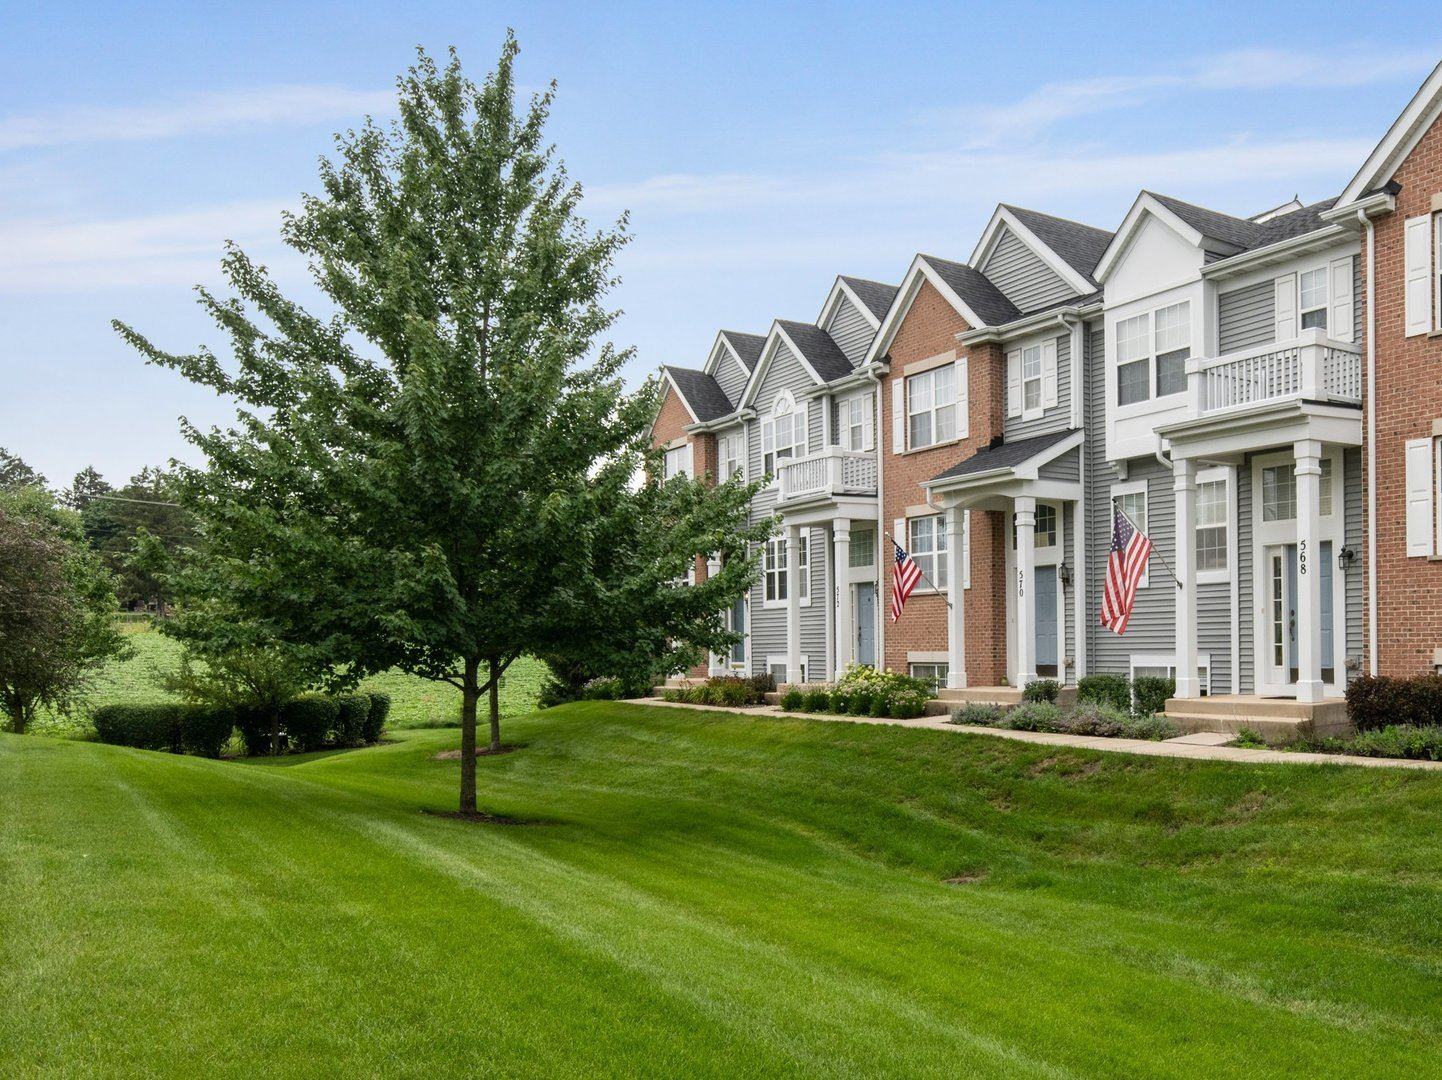 Photo of 572 Lincoln Station Drive #572, Oswego, IL 60543 (MLS # 11160636)